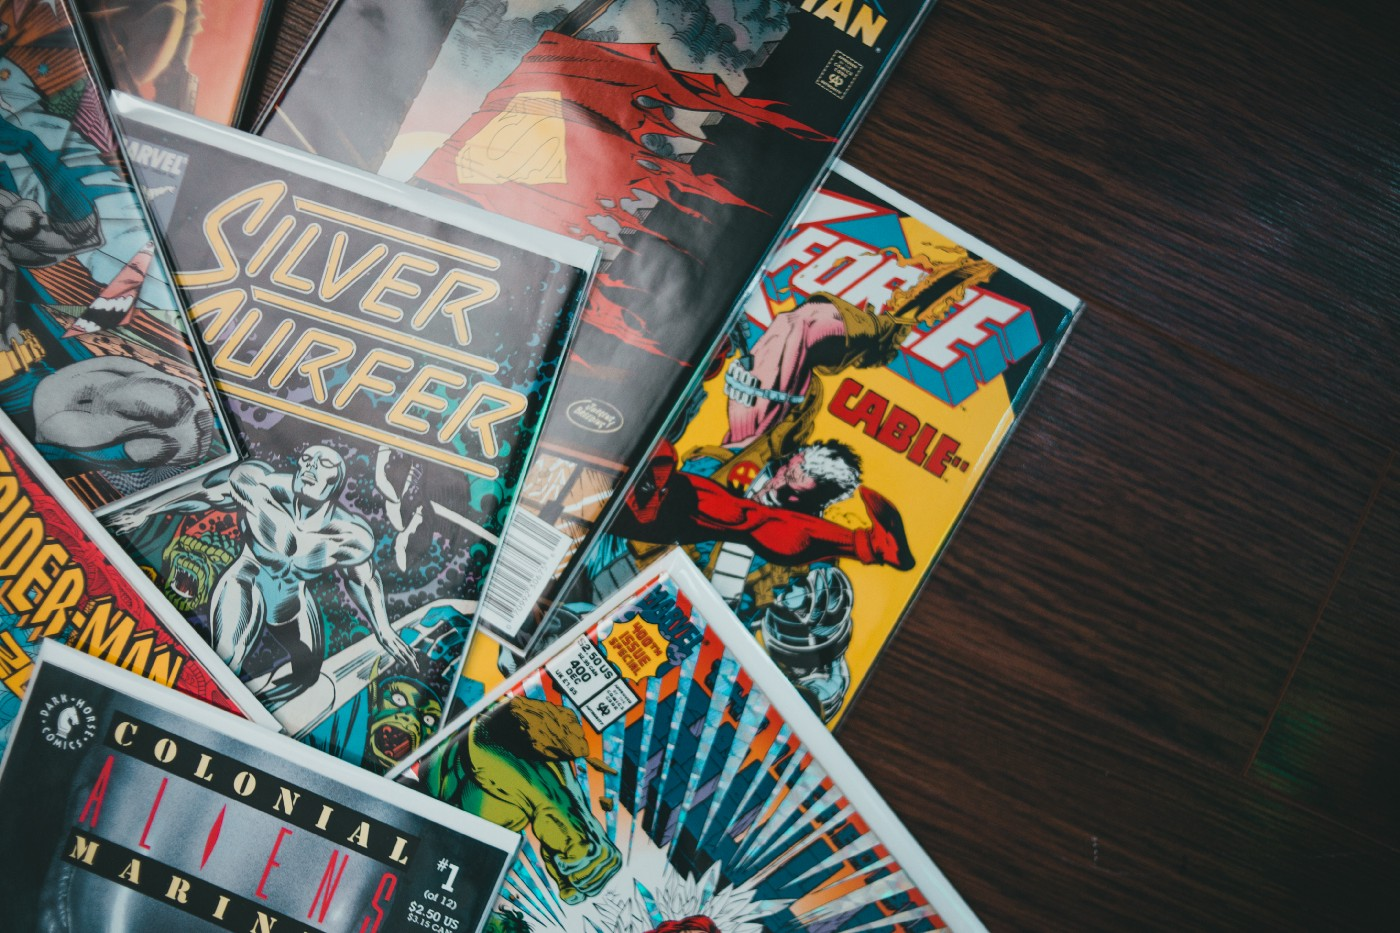 A bunch of comics artistically fanned out on a wooden table